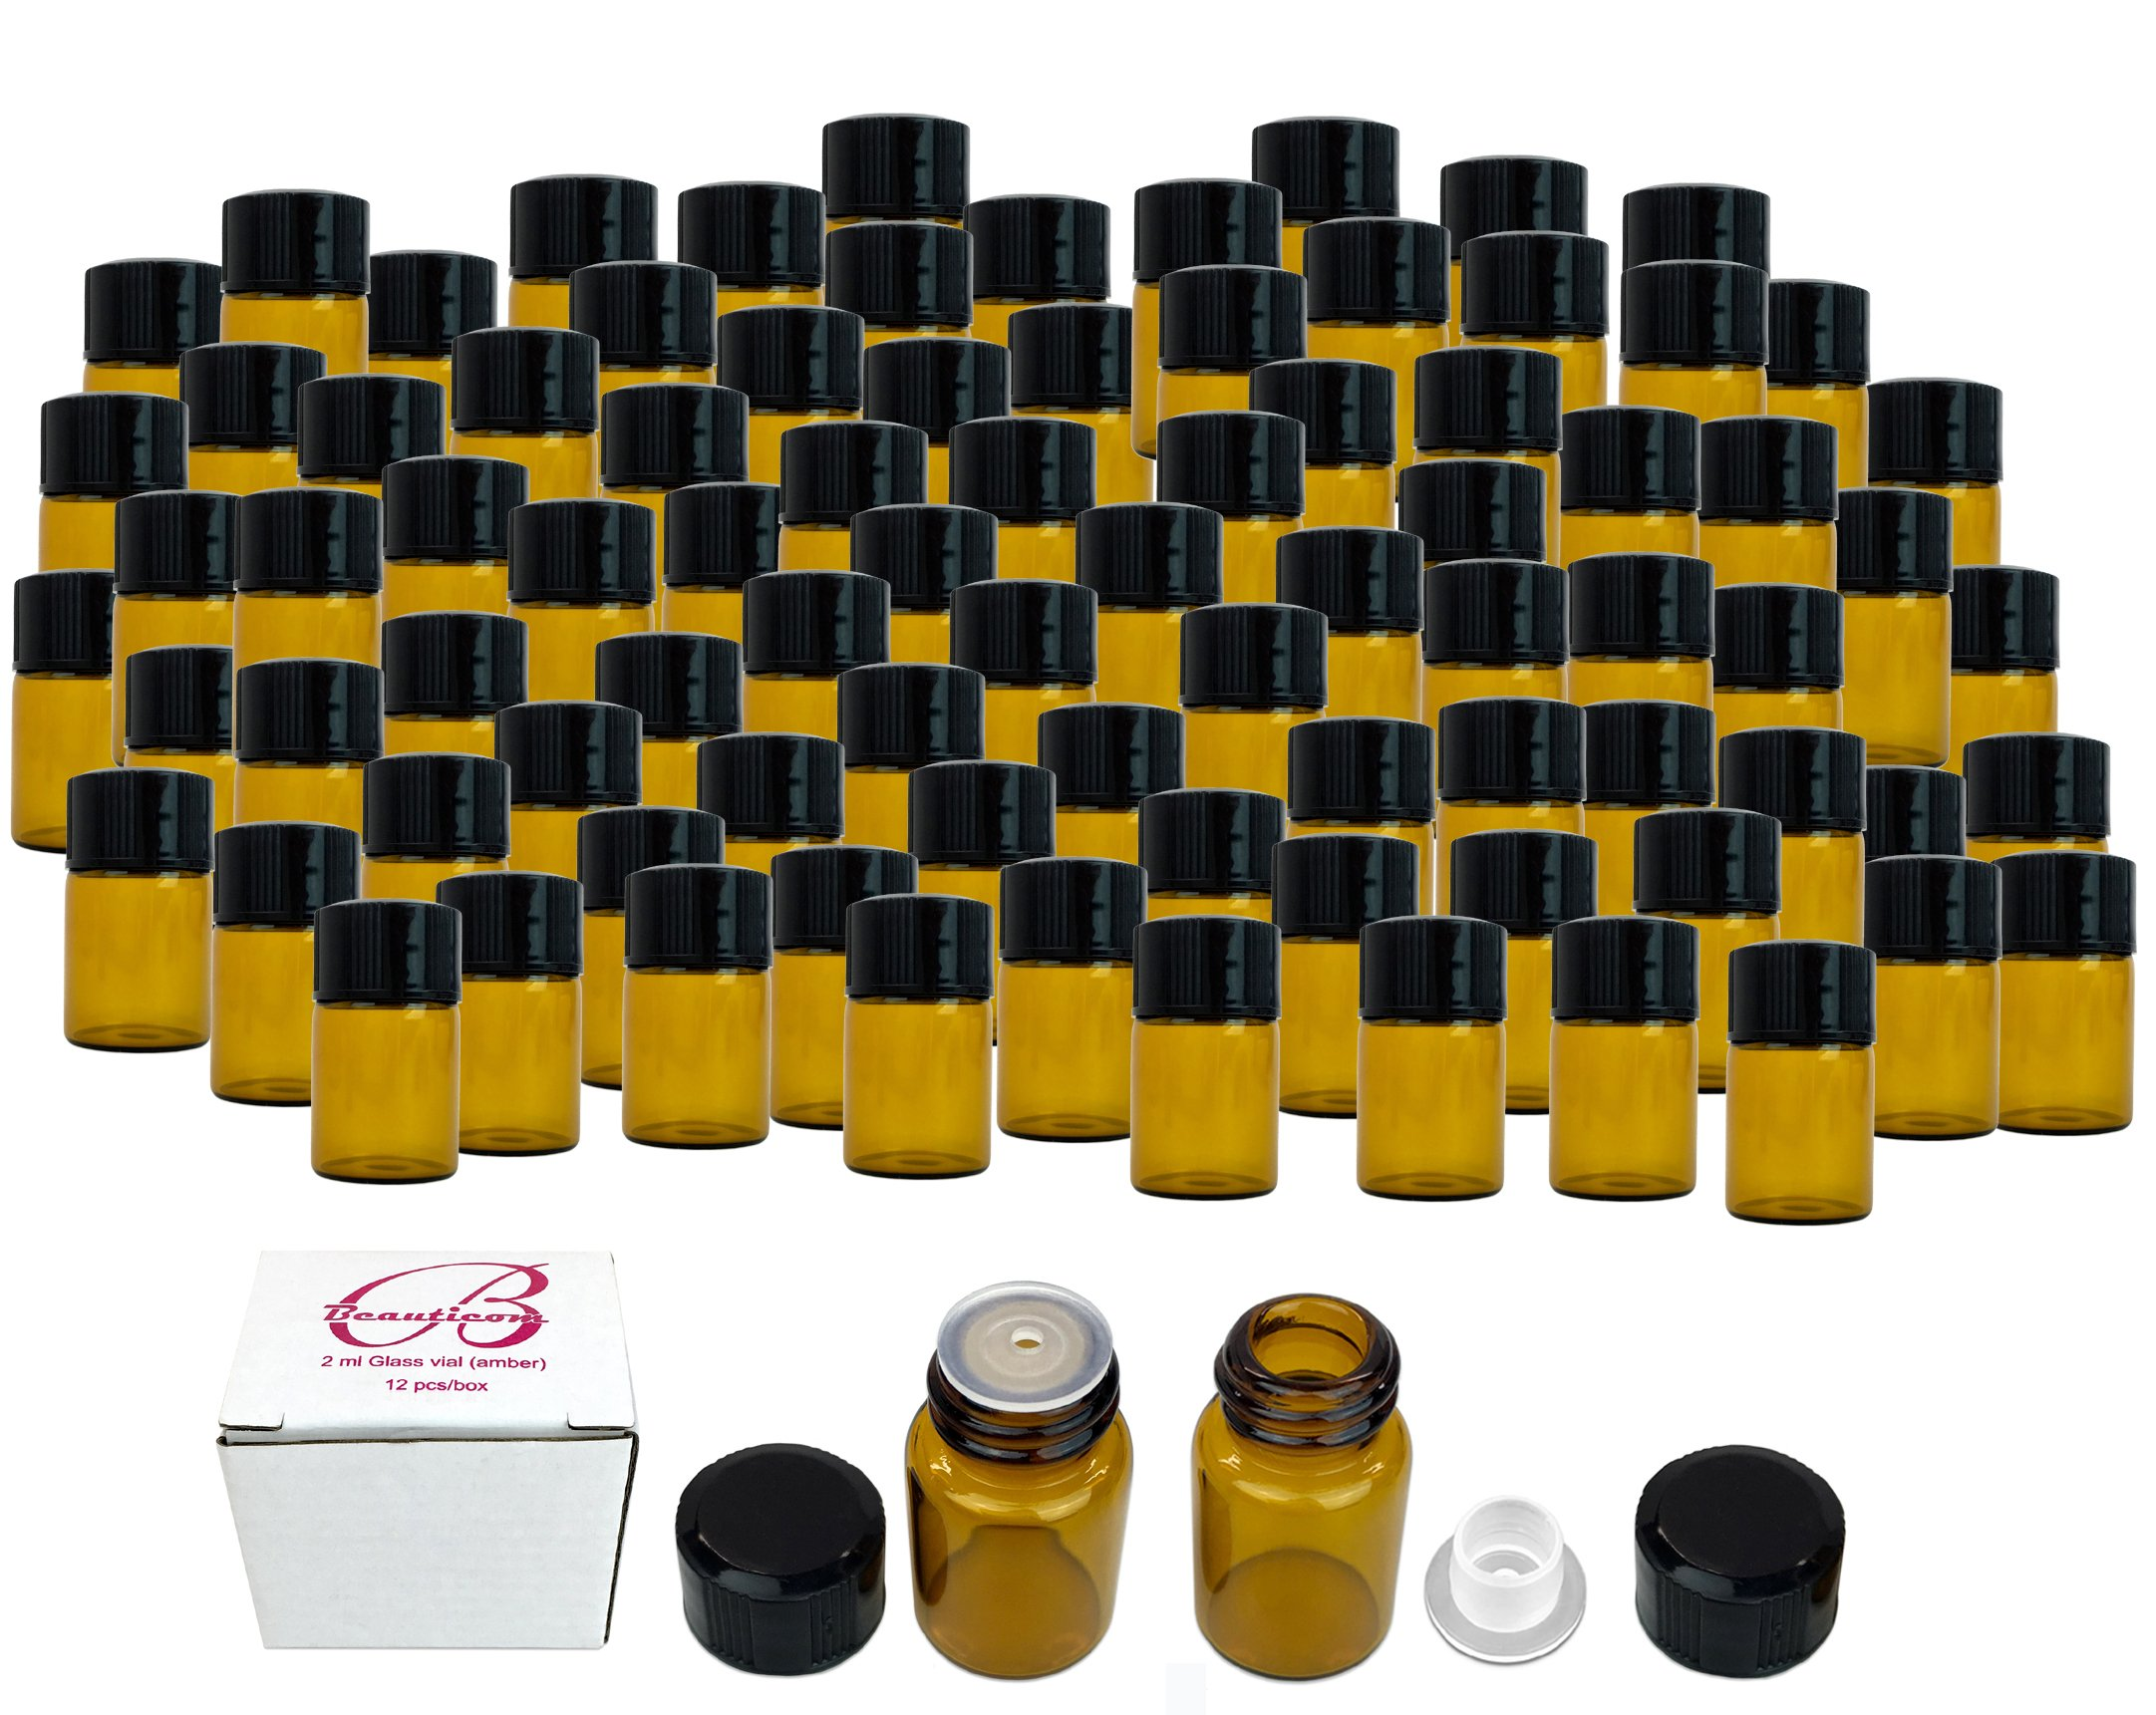 48 Packs Beauticom 2ML Amber Glass Vial for Essential Oils, Aromatherapy, Fragrance, Serums, Spritzes, with Orifice Reducer and Dropper Top